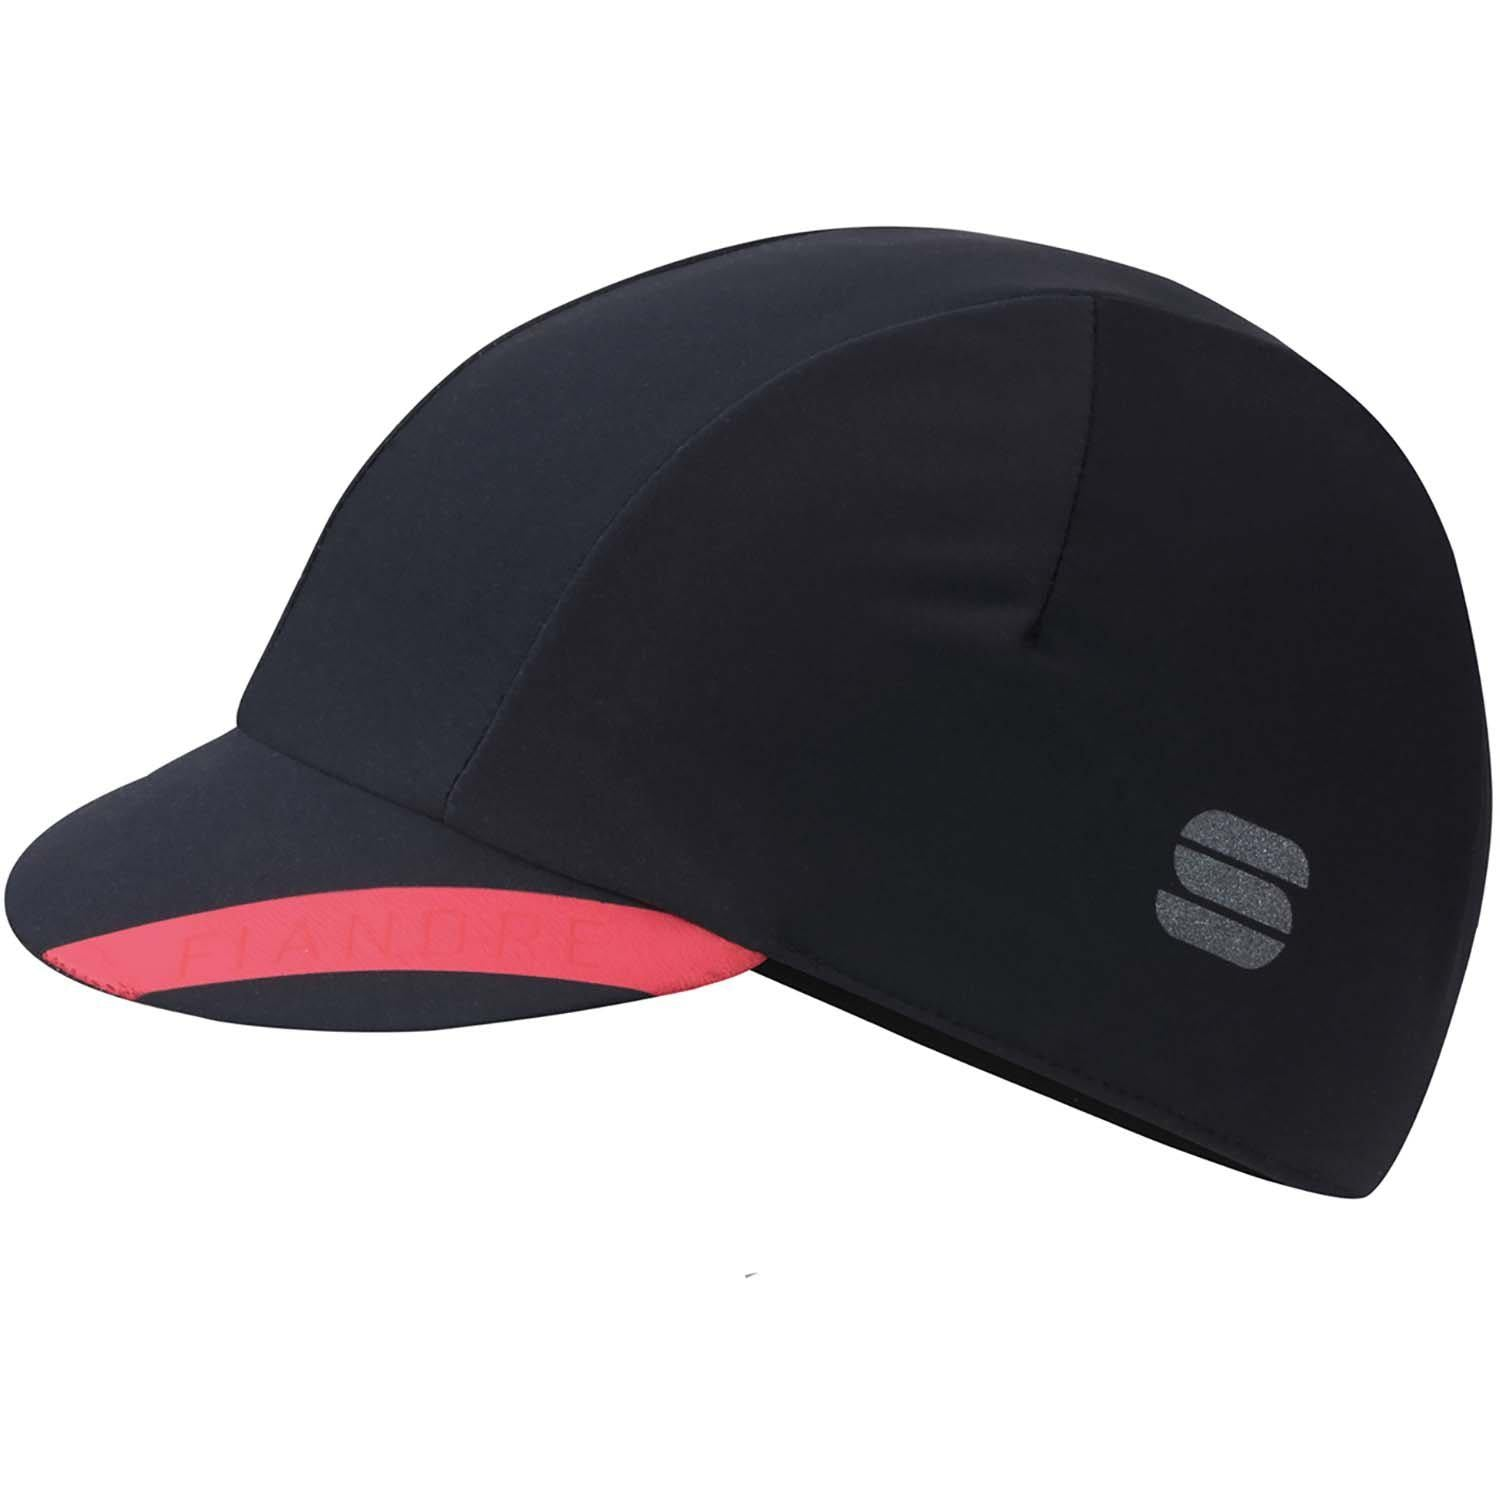 Sportful-Sportful Fiandre NoRain Cap-Black-UNI-SF200500028-saddleback-elite-performance-cycling